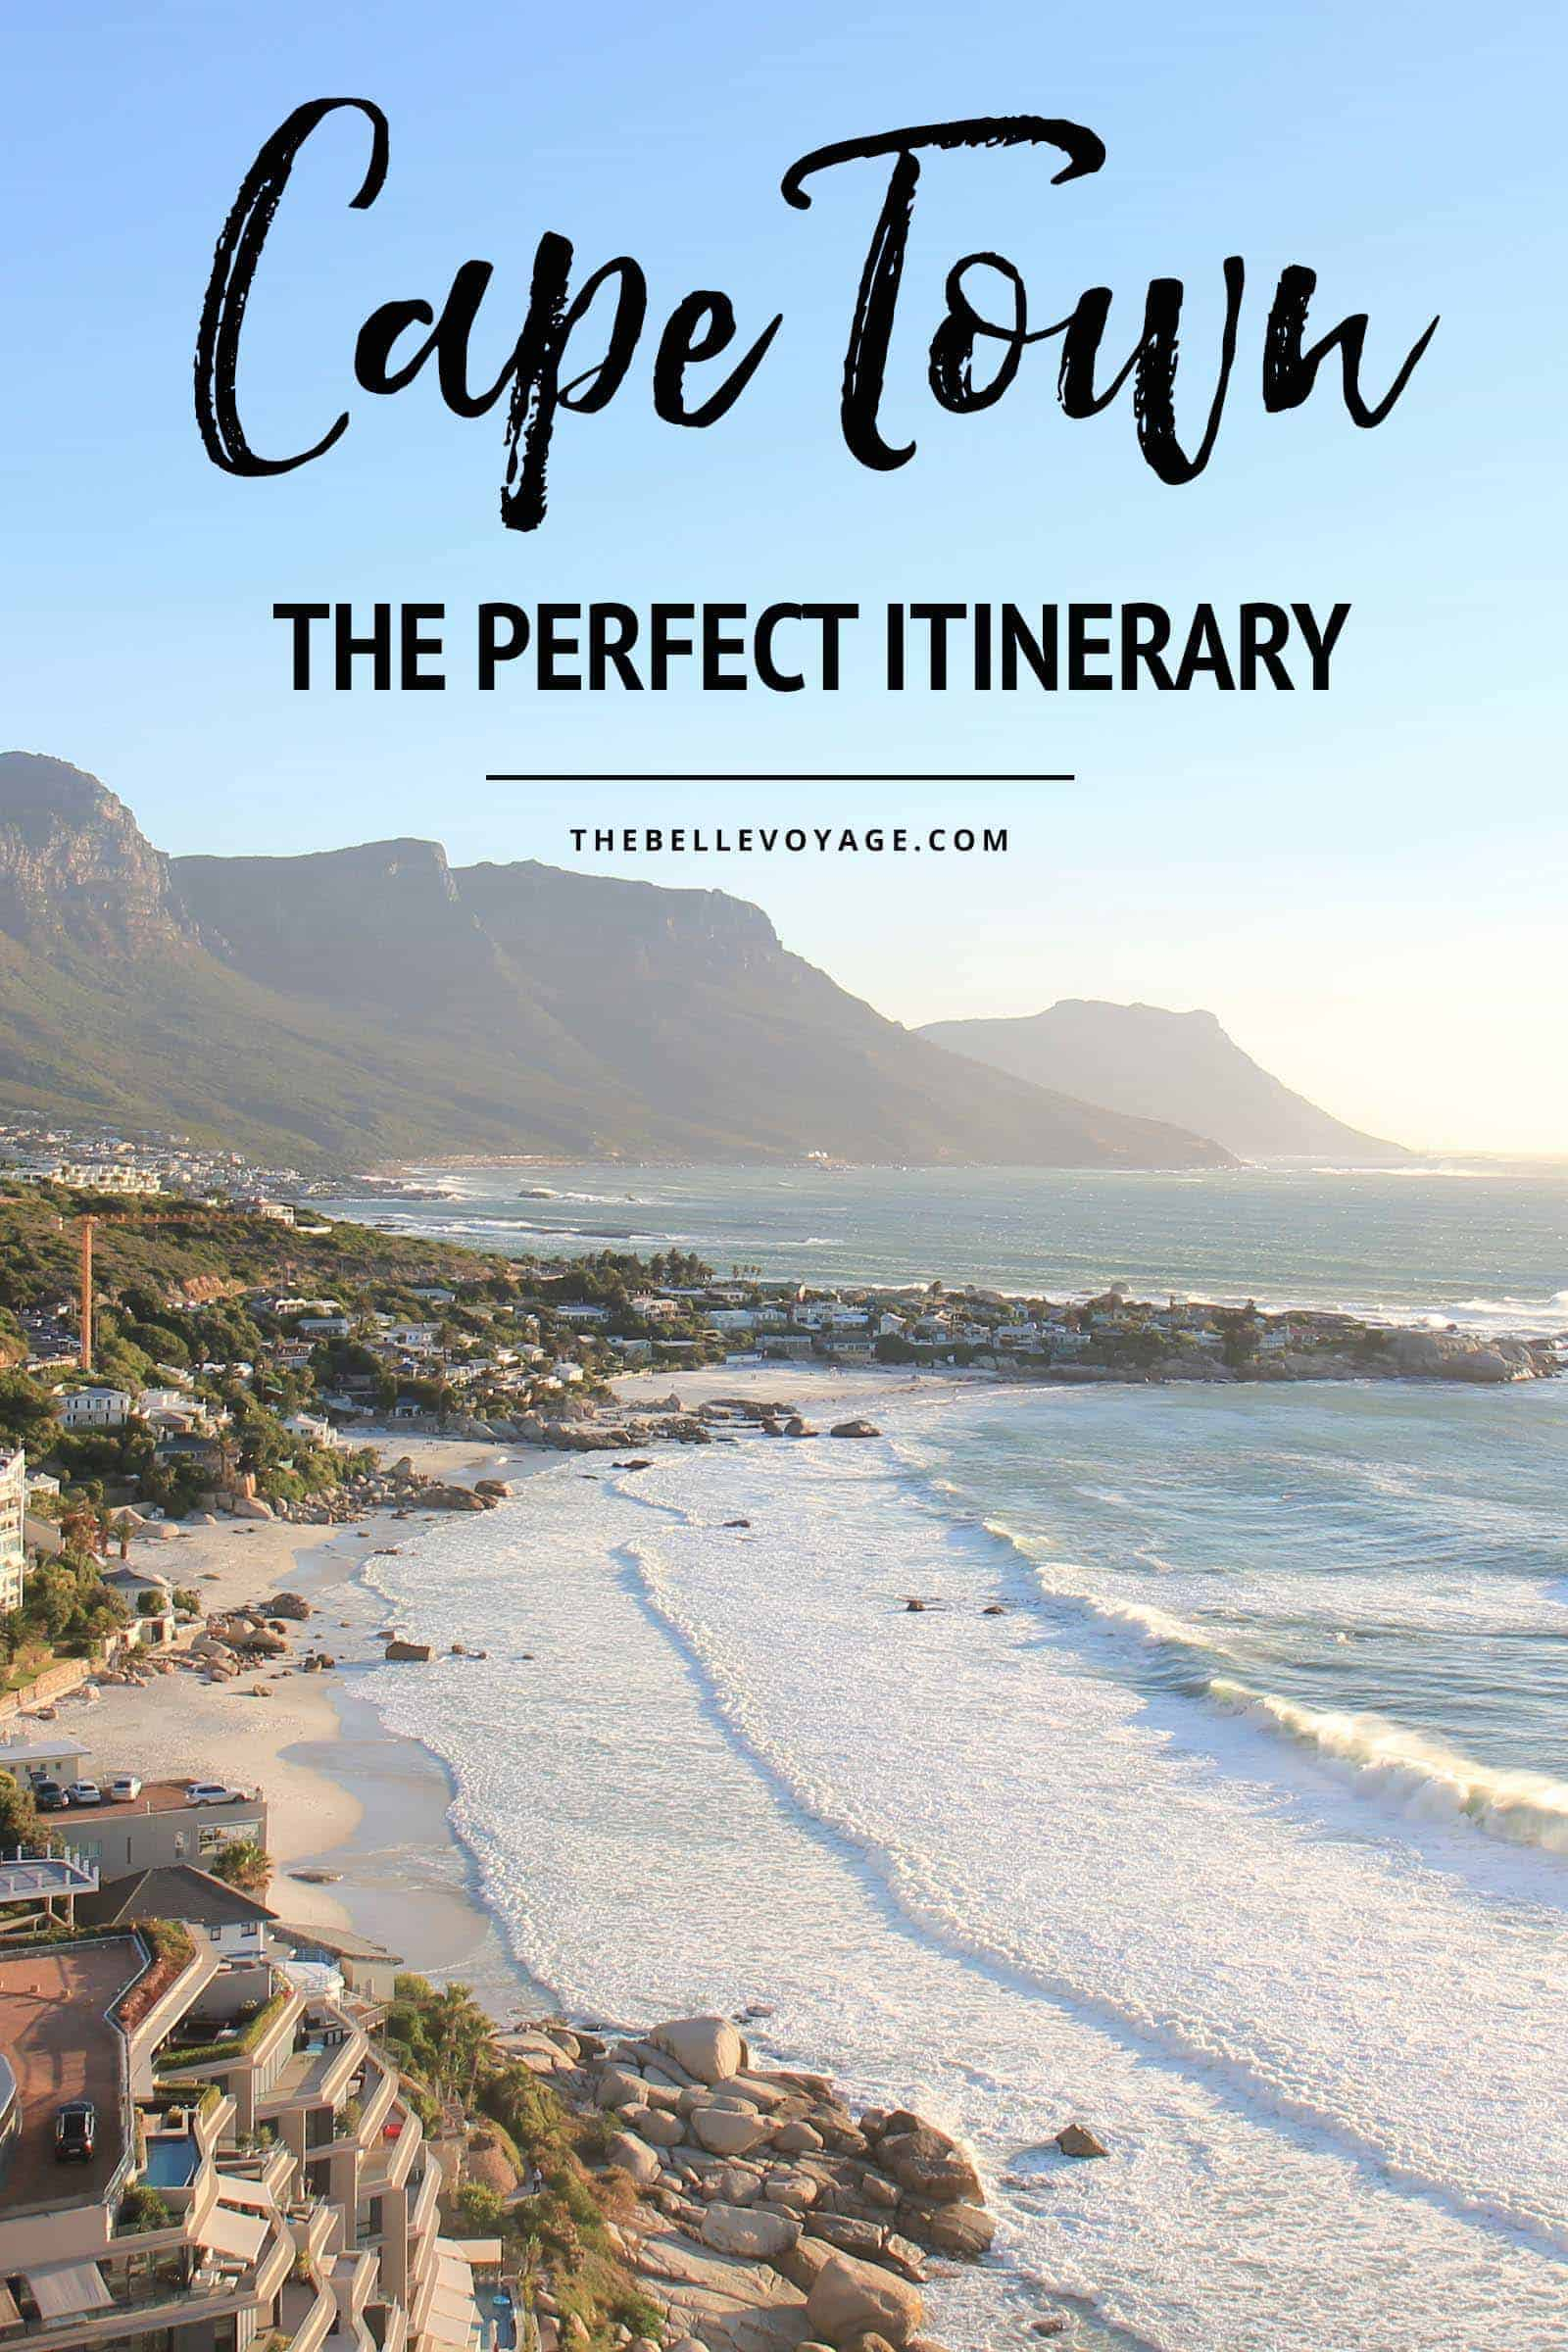 cape town south africa the perfect itinerary for first